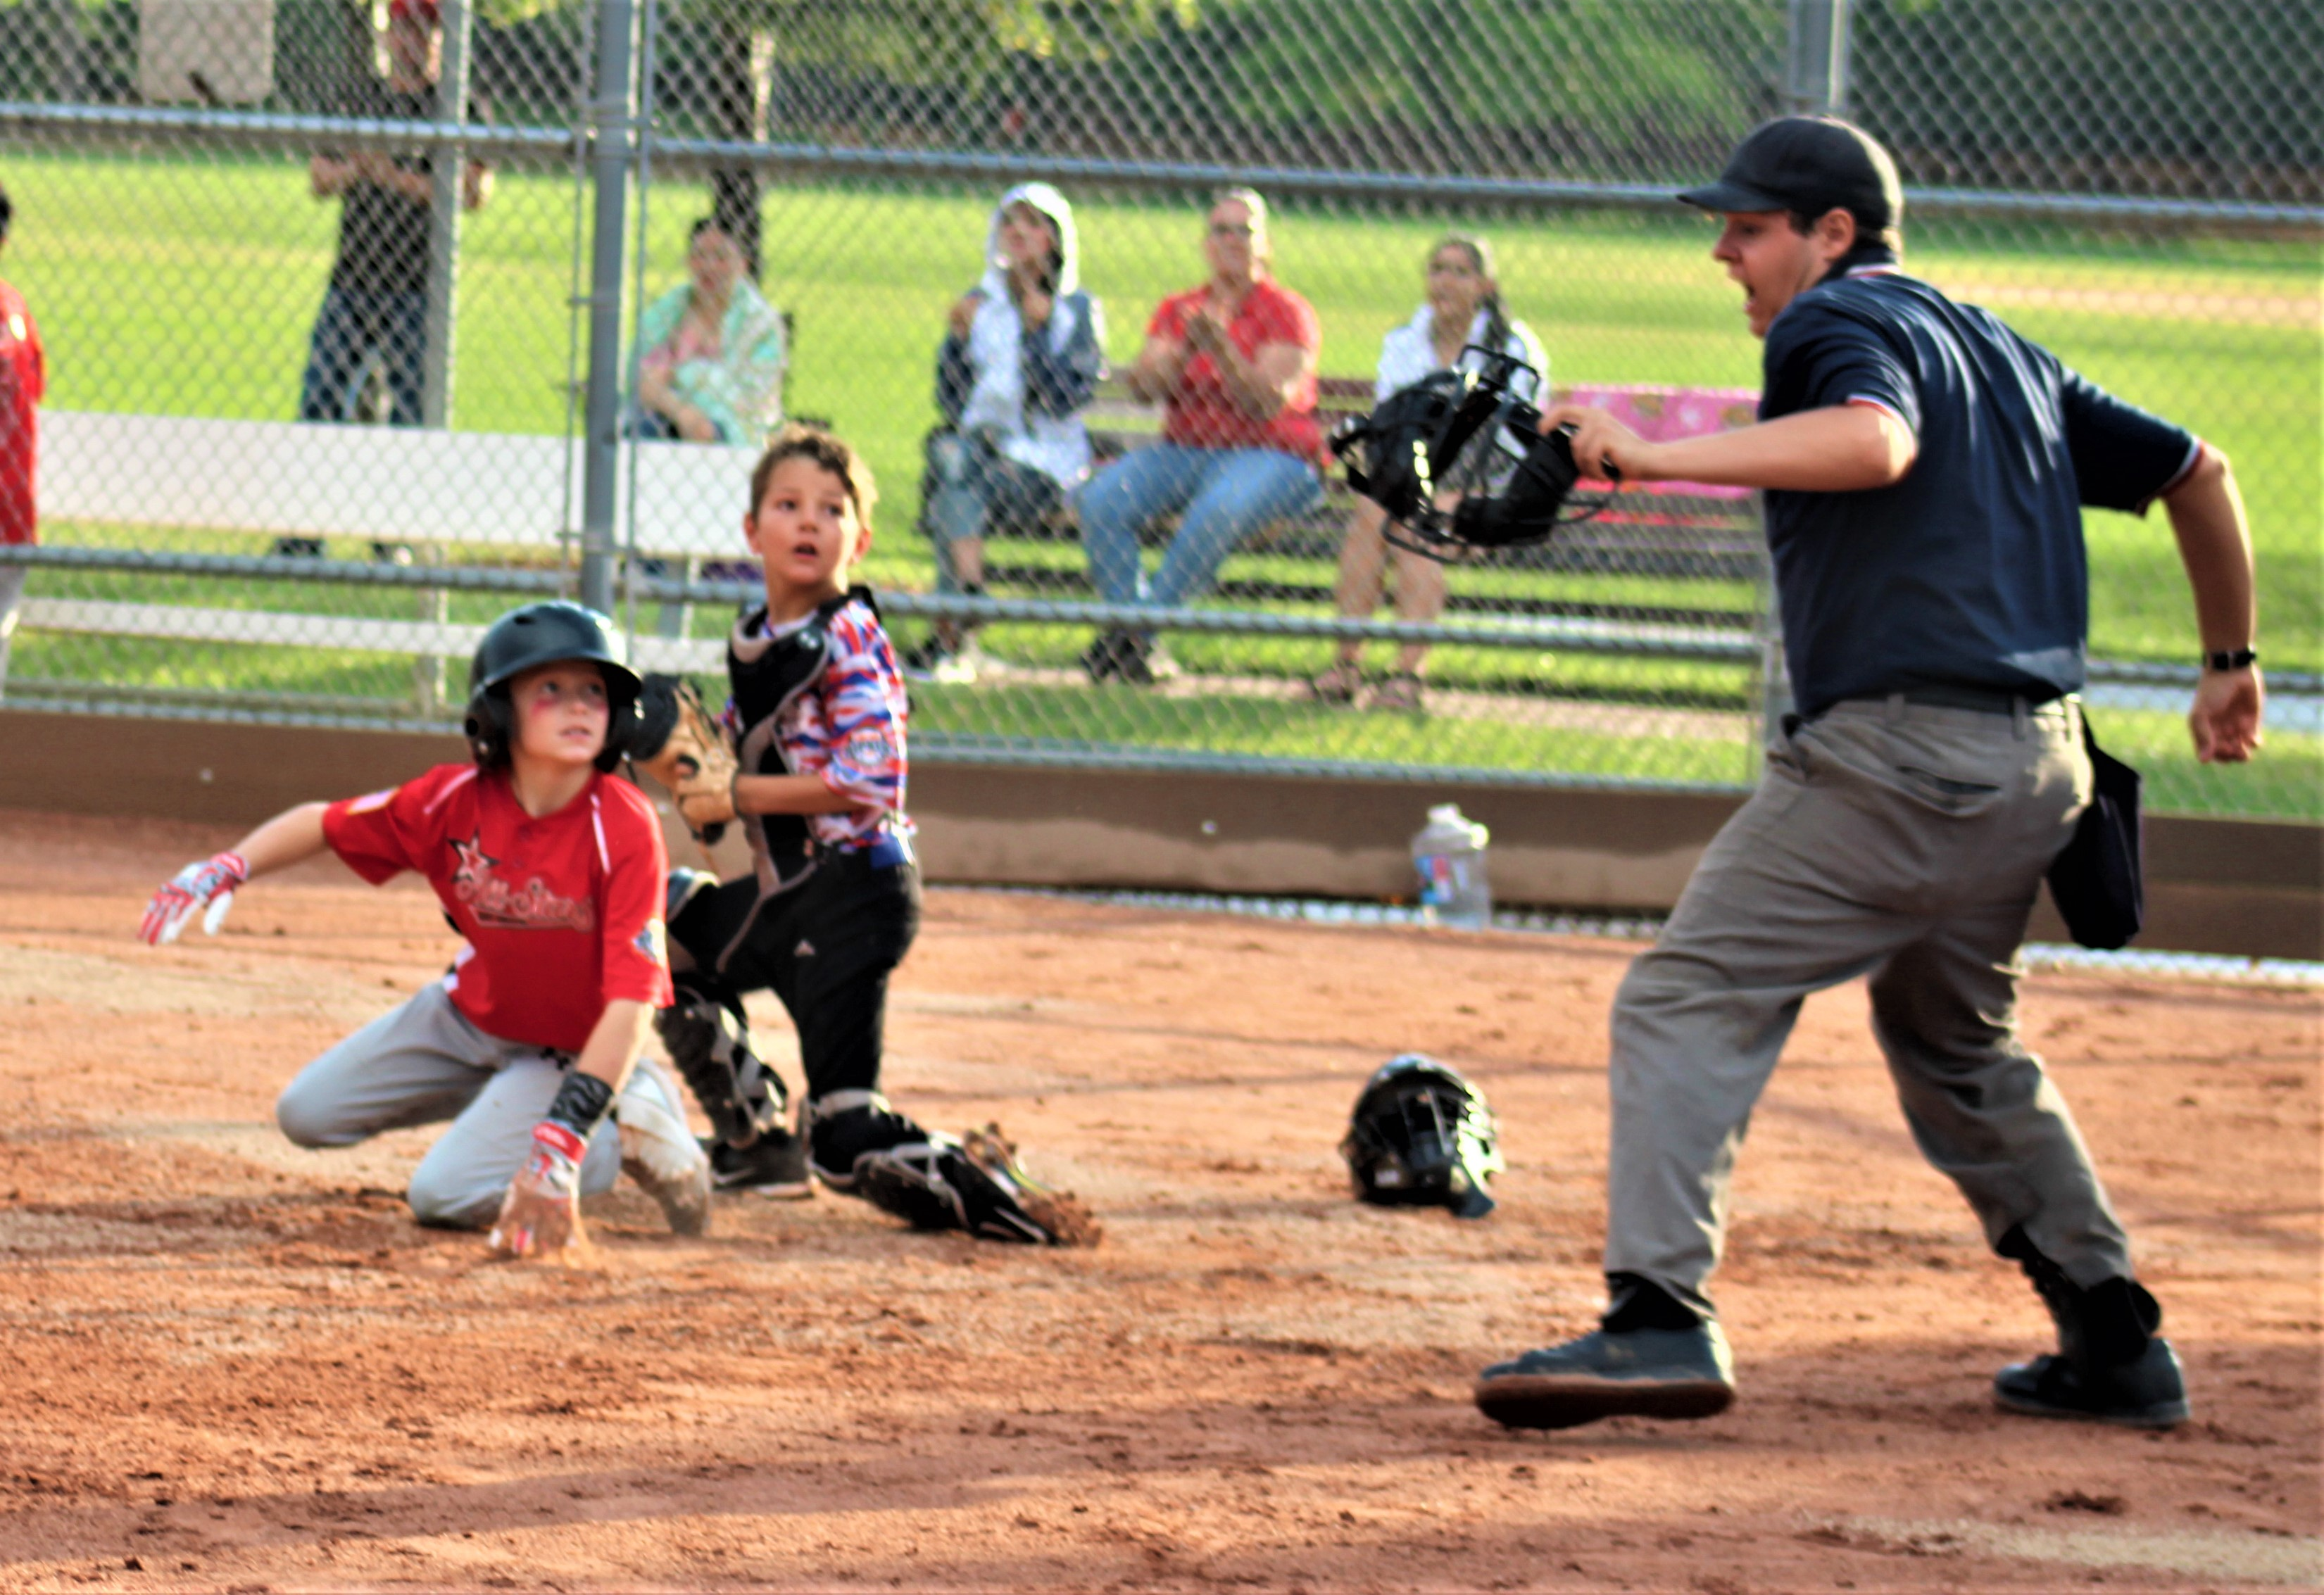 Opponent and Ayden waiting for the umps final call at the plate---he was called out! (Photo credit: Rachel Bletzacker)